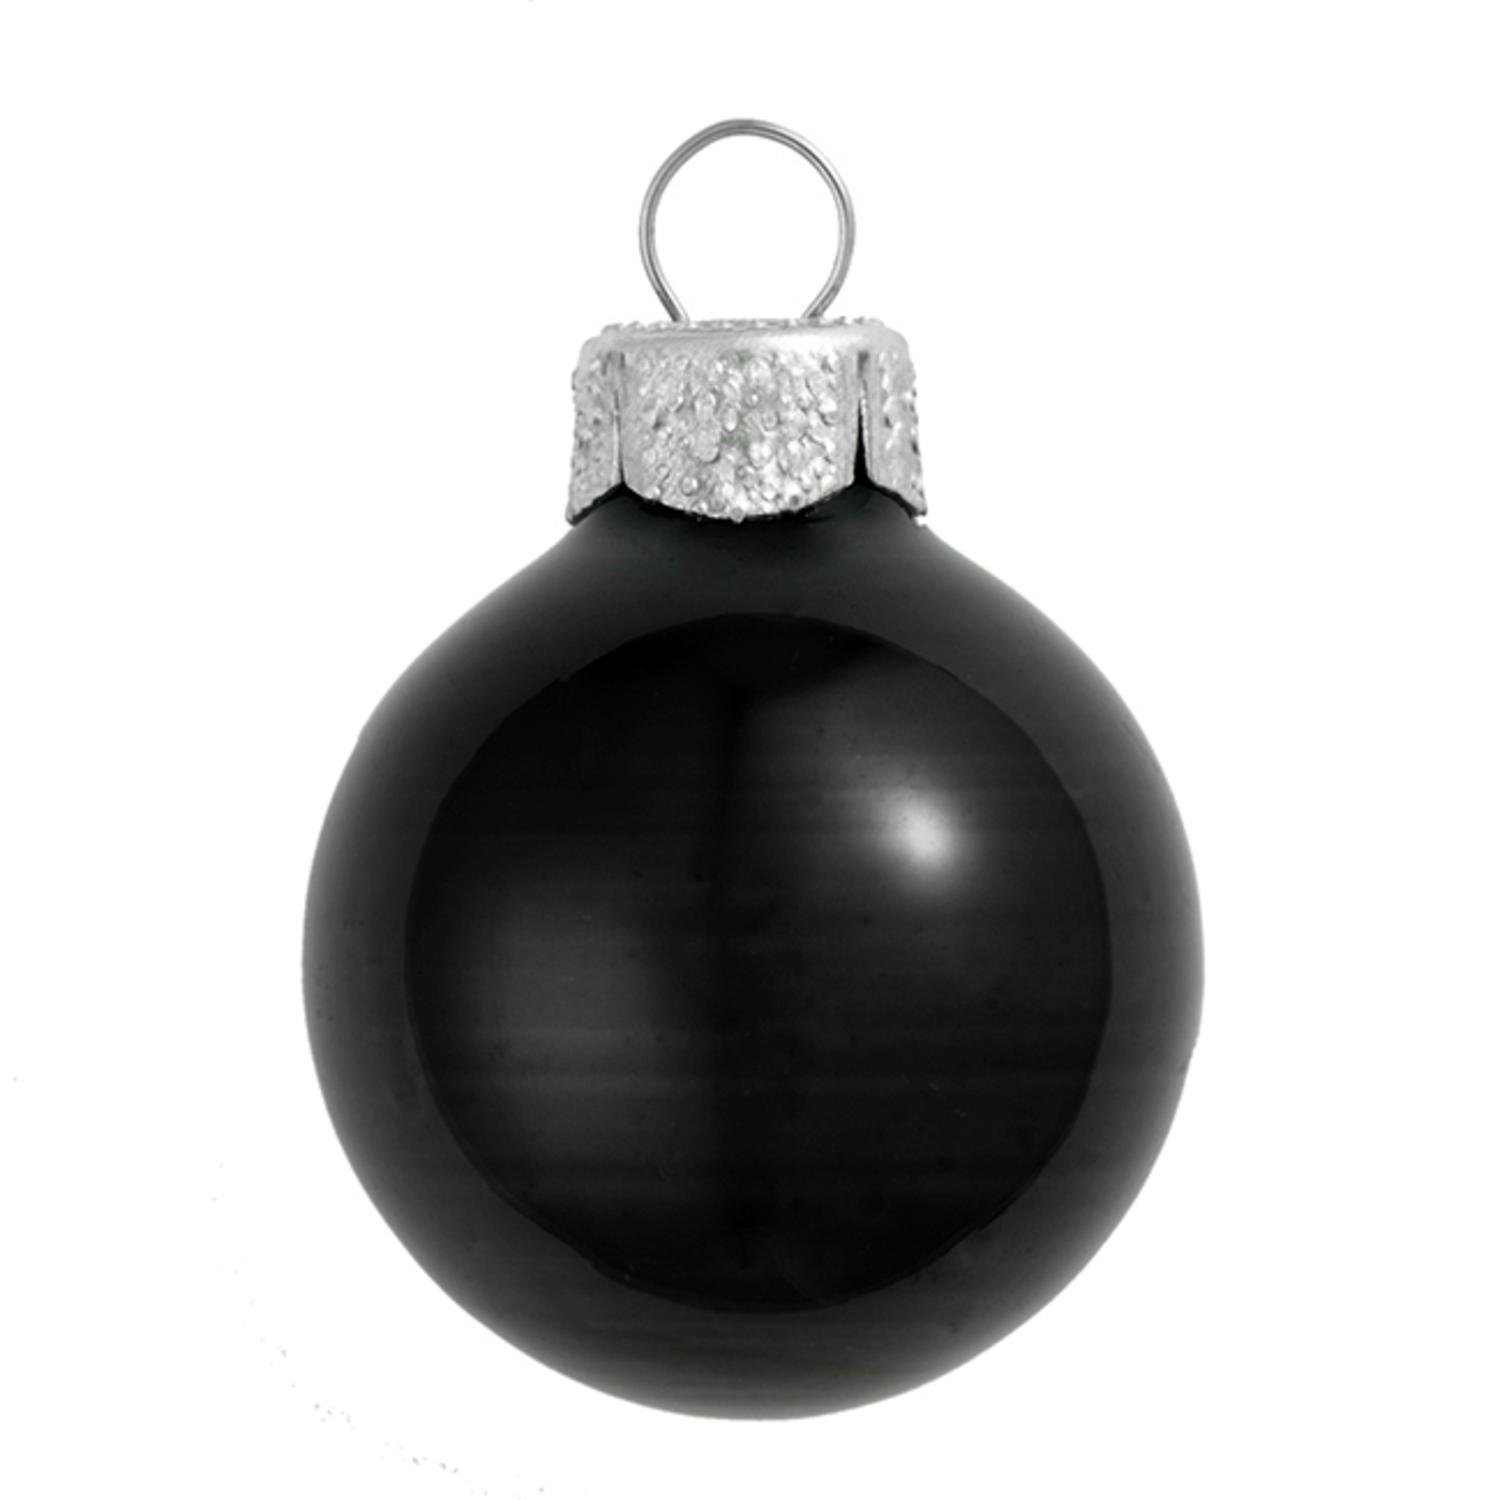 Black Christmas Ornaments.Amazon Com 12ct Shiny Black Glass Ball Christmas Ornaments